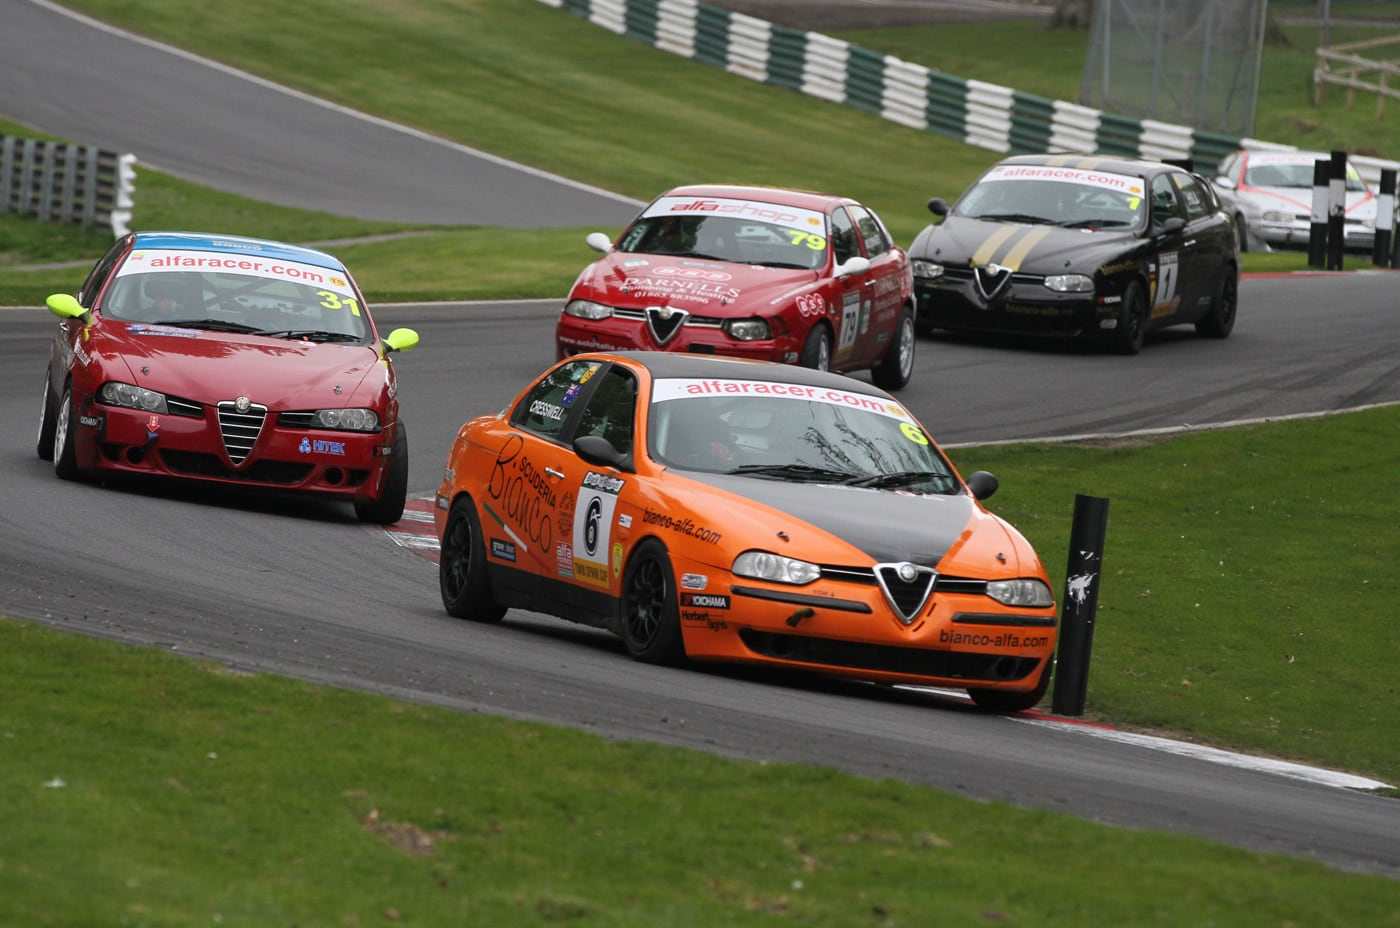 Cadwell Park 2018 Preview